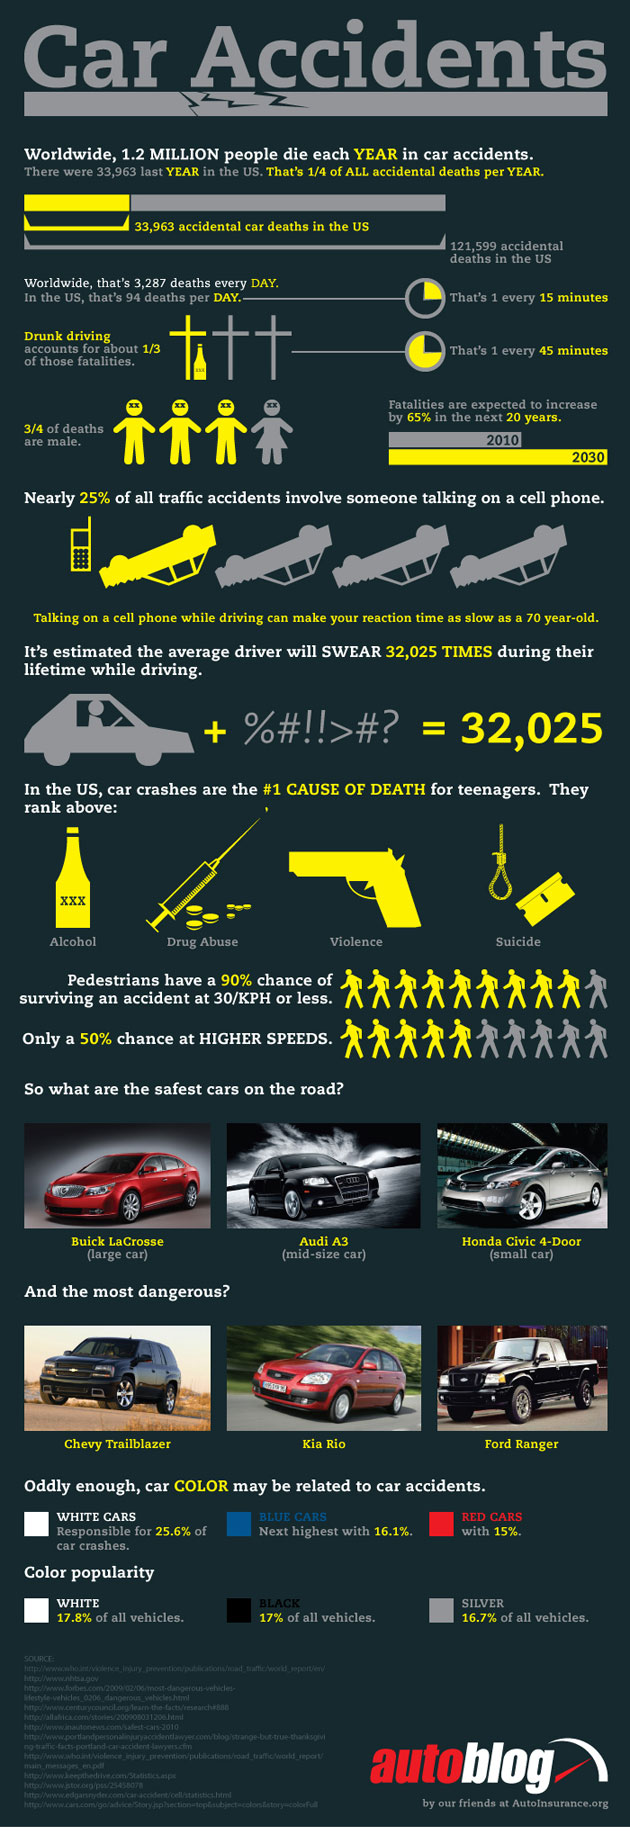 Car Accidents Claim A Life Every 15 Minutes And Other Sobering